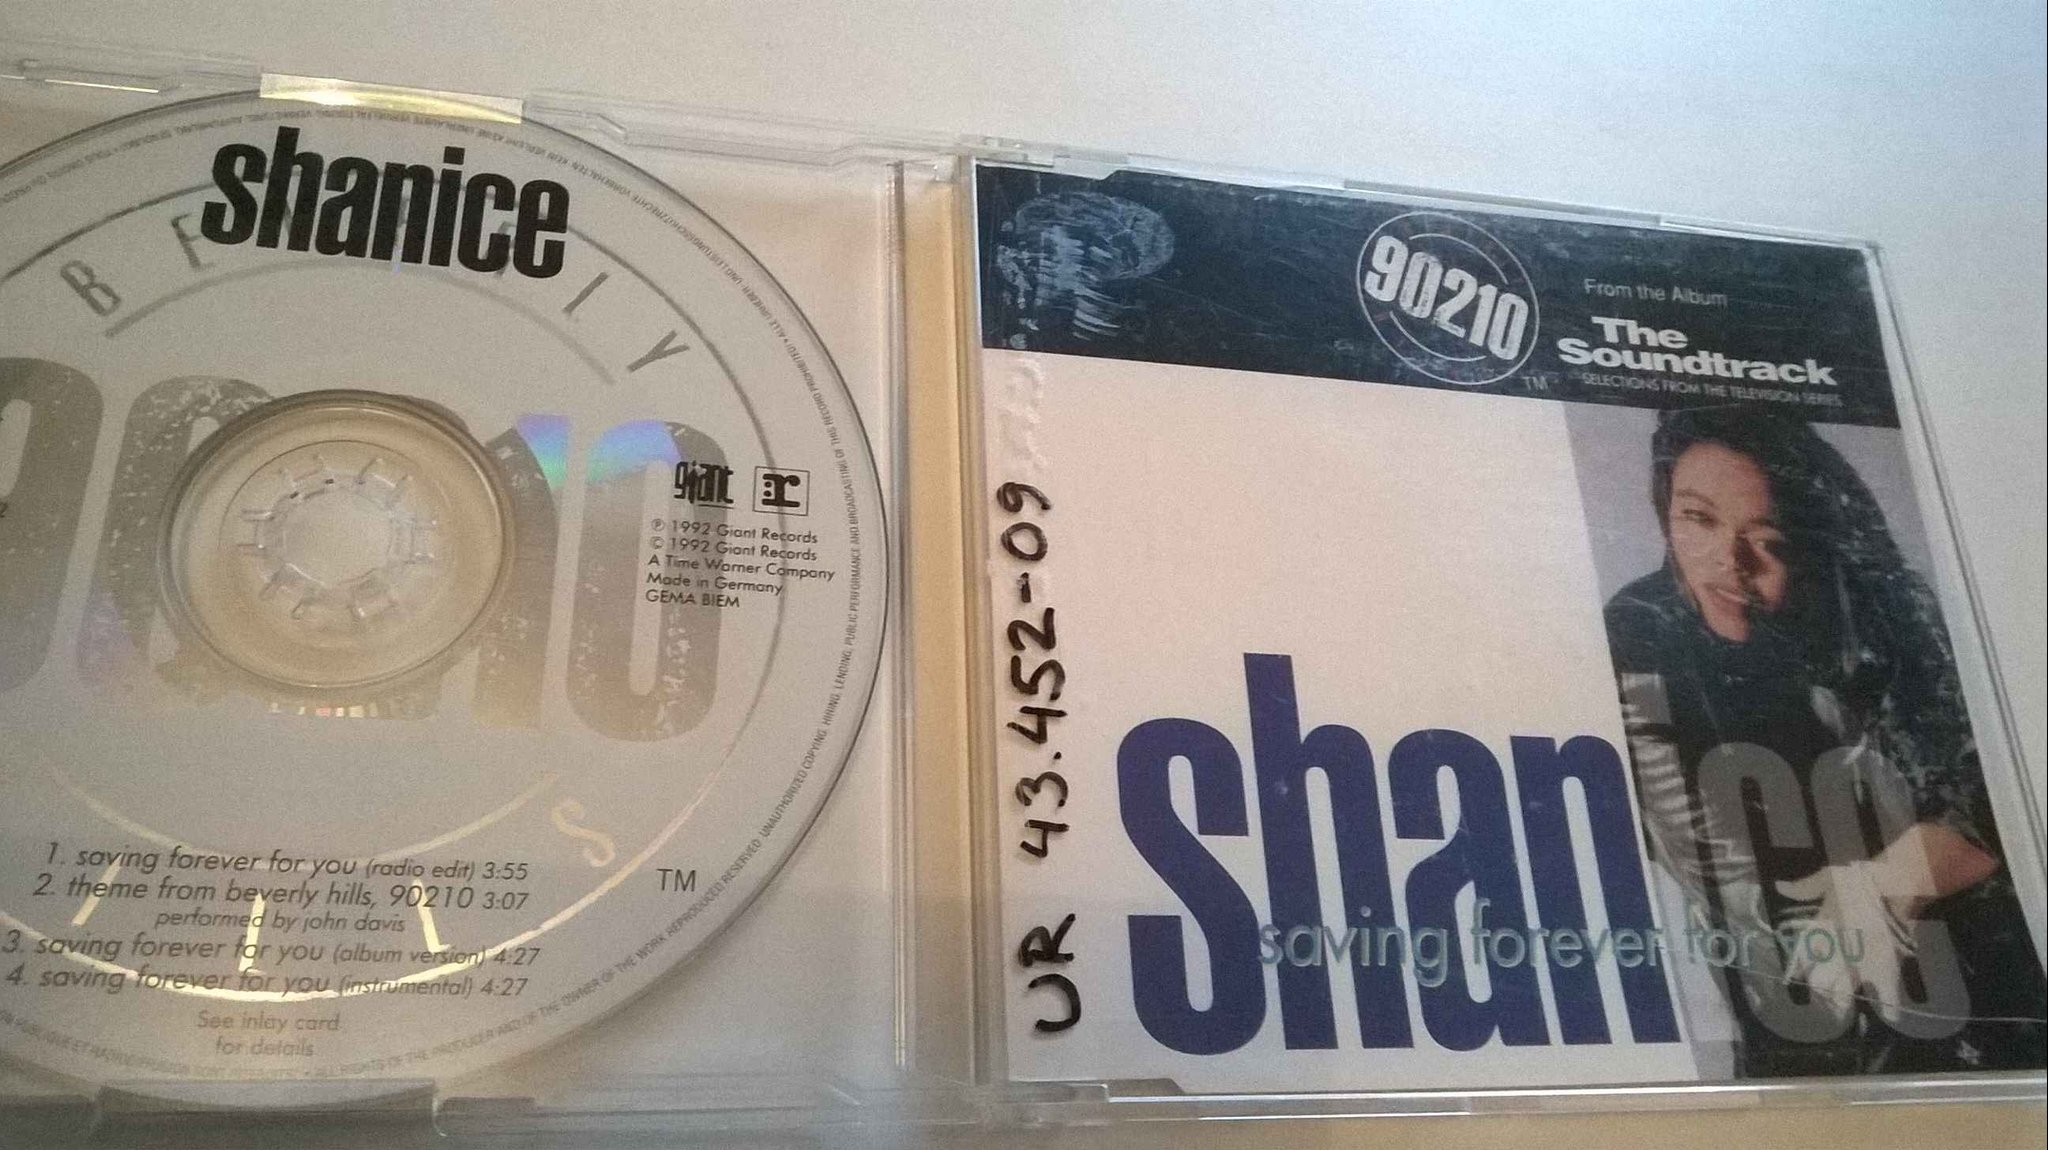 Shanice ?- Saving Forever For You, CD, Single